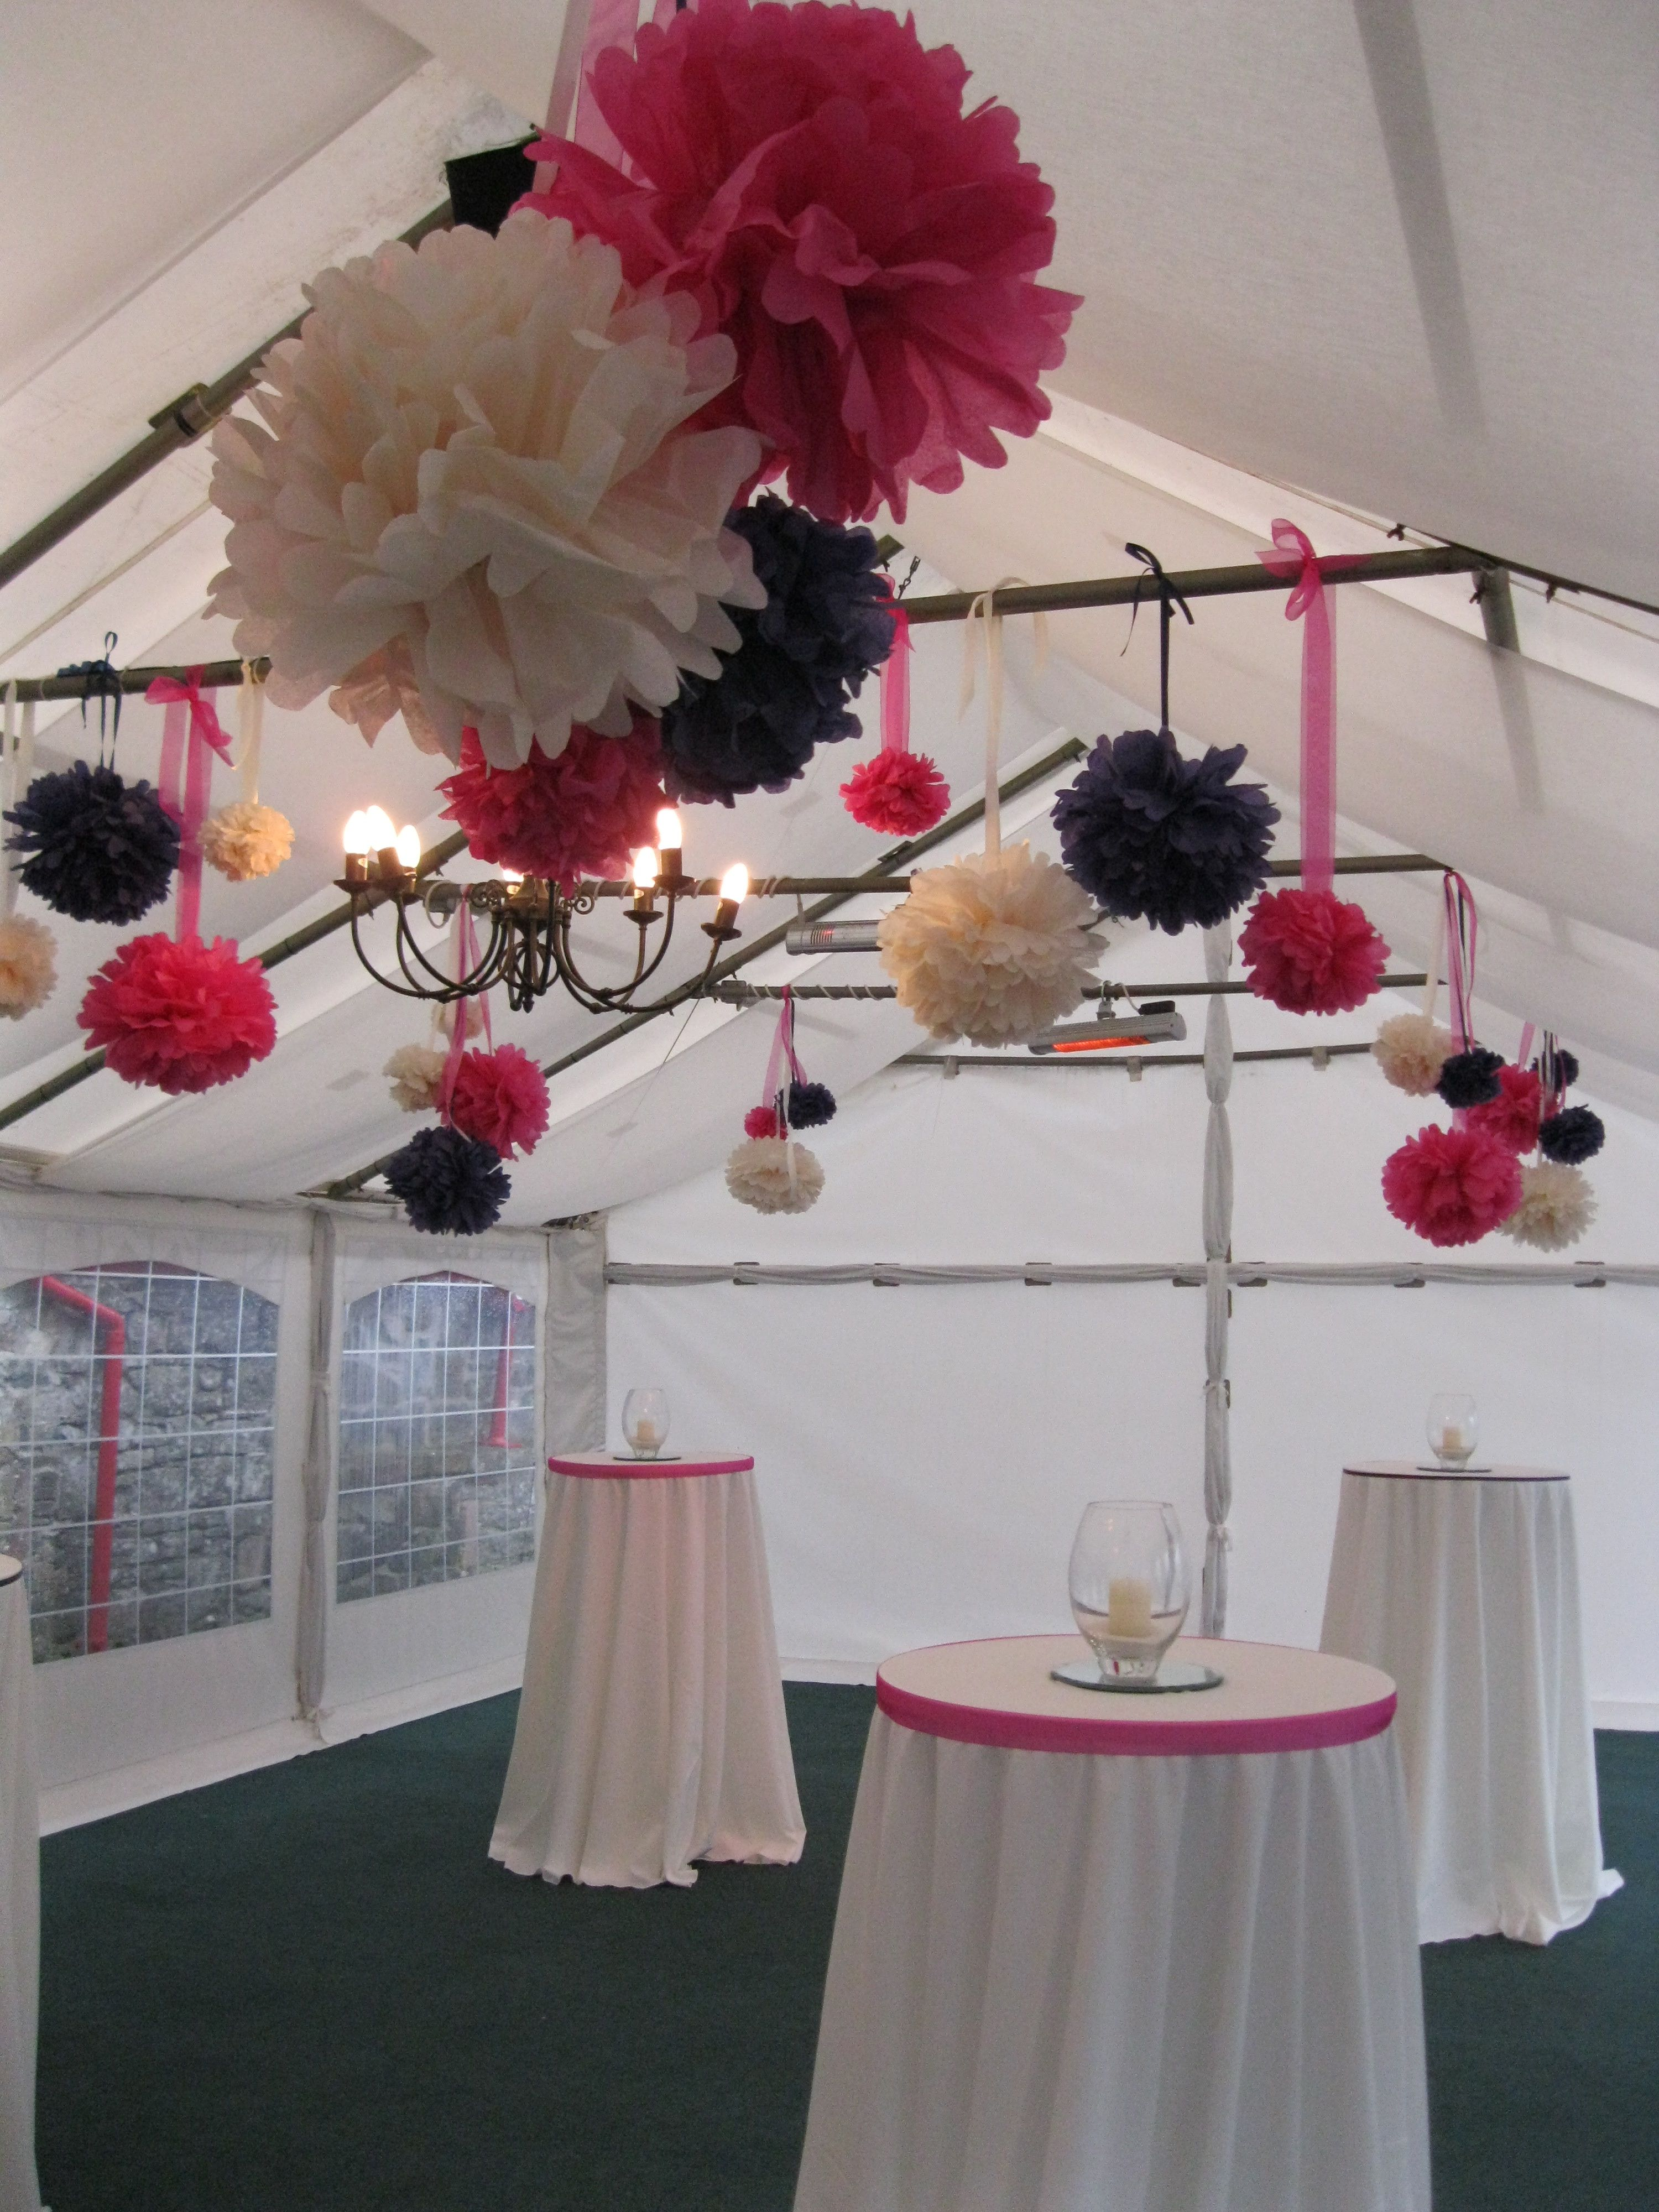 pom pom installation with co-ordinating poseur tables and linens @Larchfield Estate estate. www.moodevents.co.uk